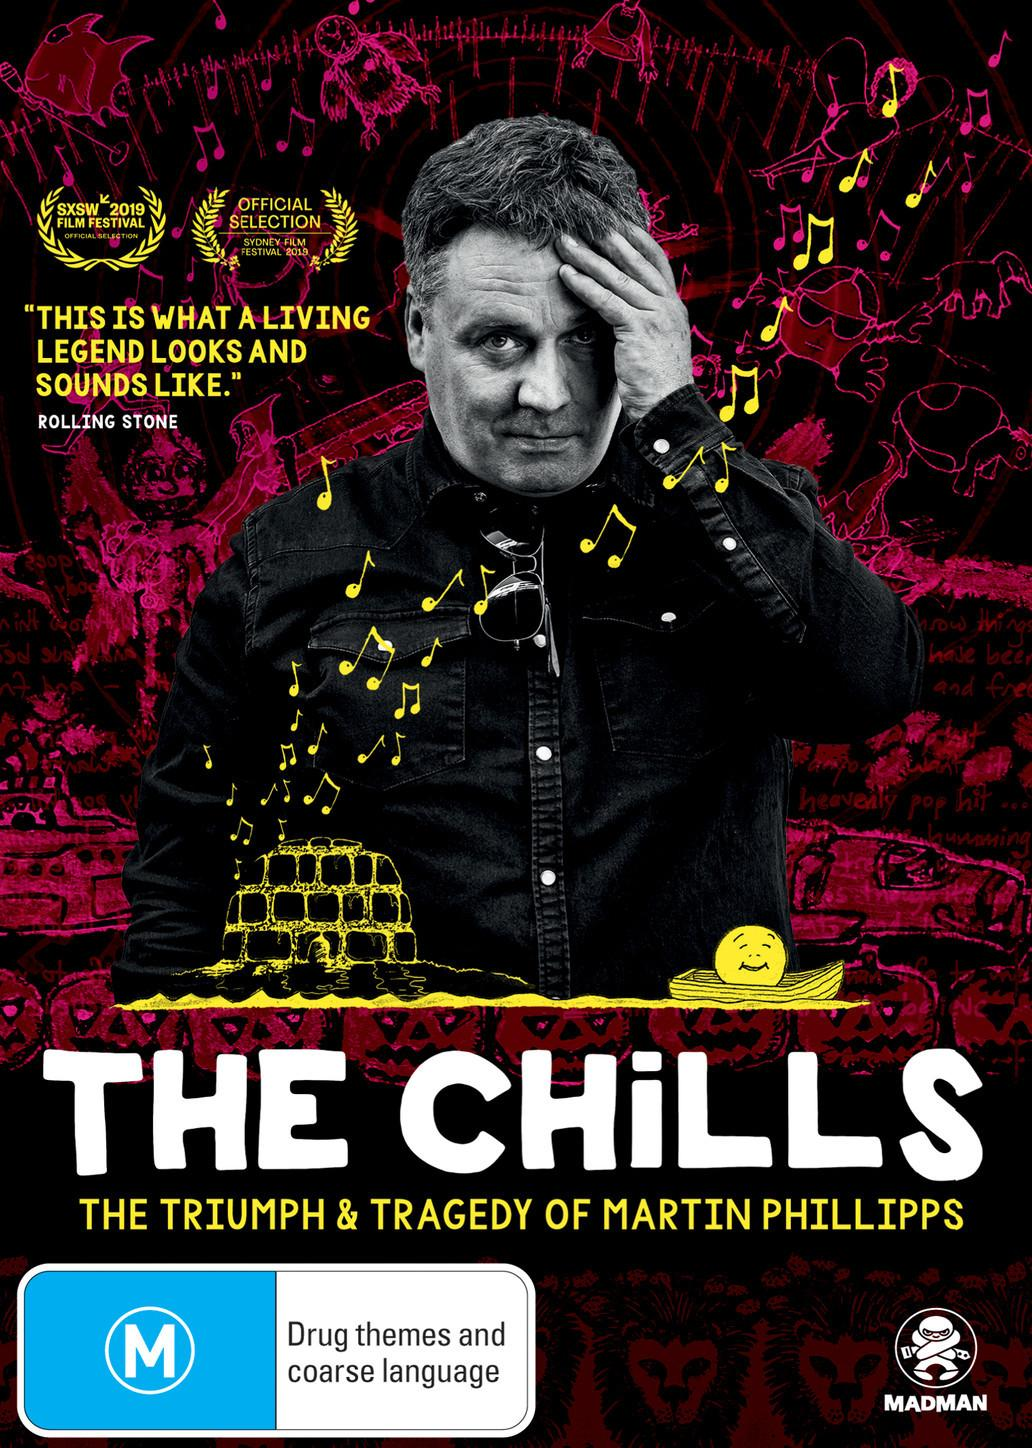 The Chills: The Triumph & Tragedy of Martin Phillipps (DVD)